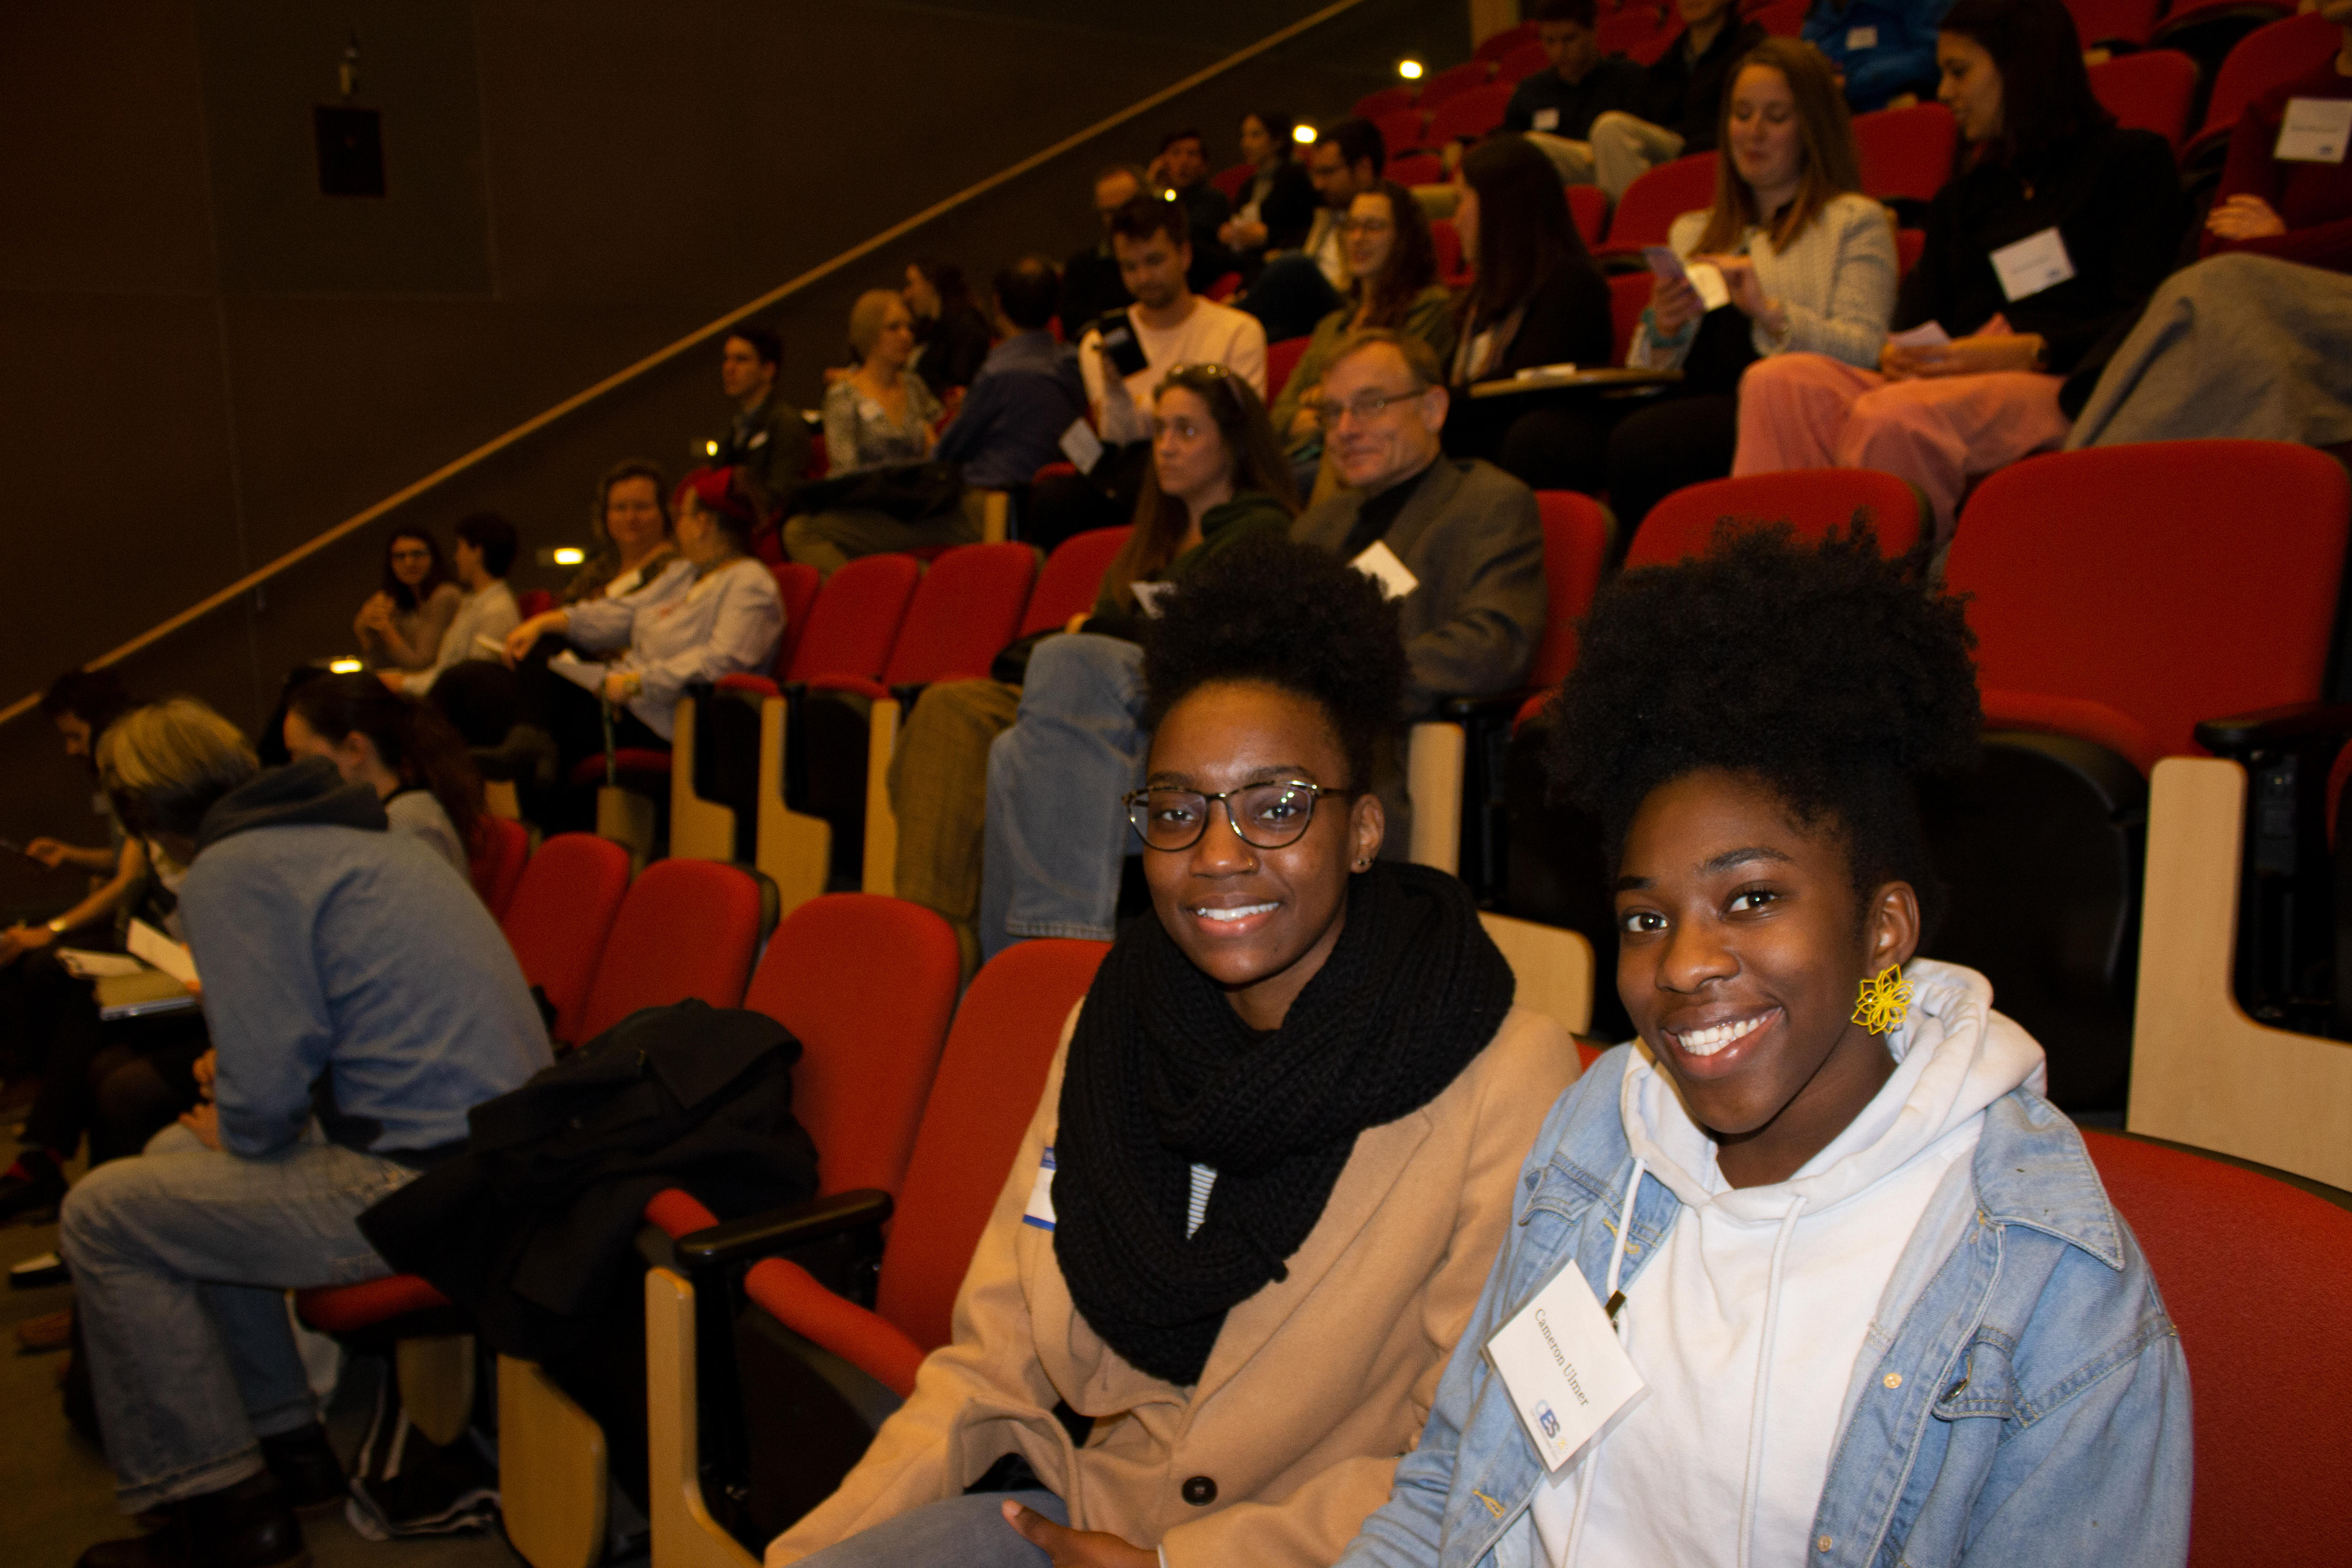 Two women sit in the front row of an auditorium and smile at the camera.